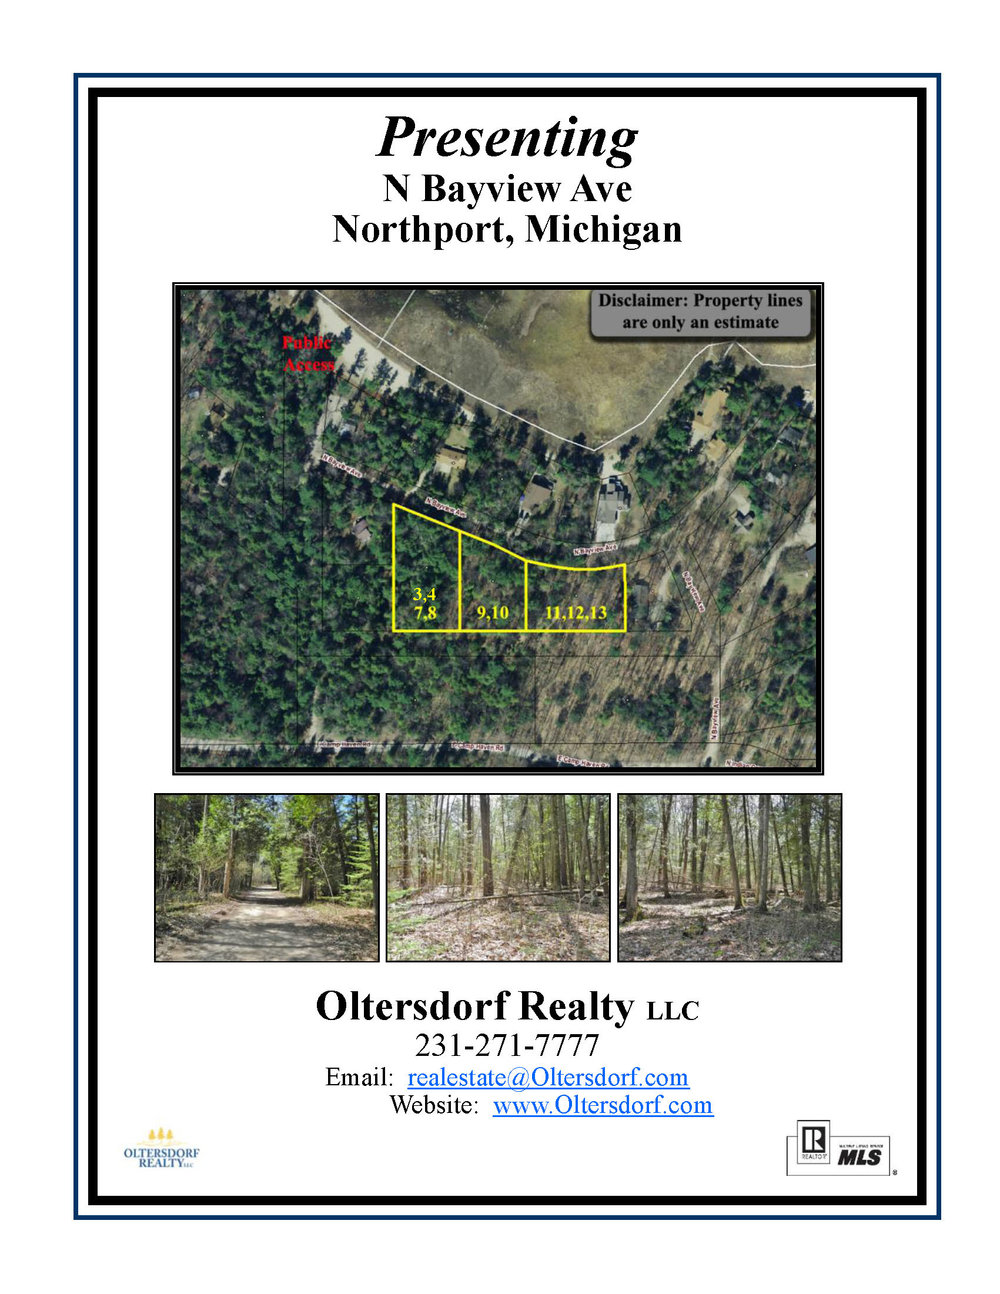 N Bay View Avenue, Northport Michigan real estate for sale by Oltersdorf Realty LLC (1).jpg